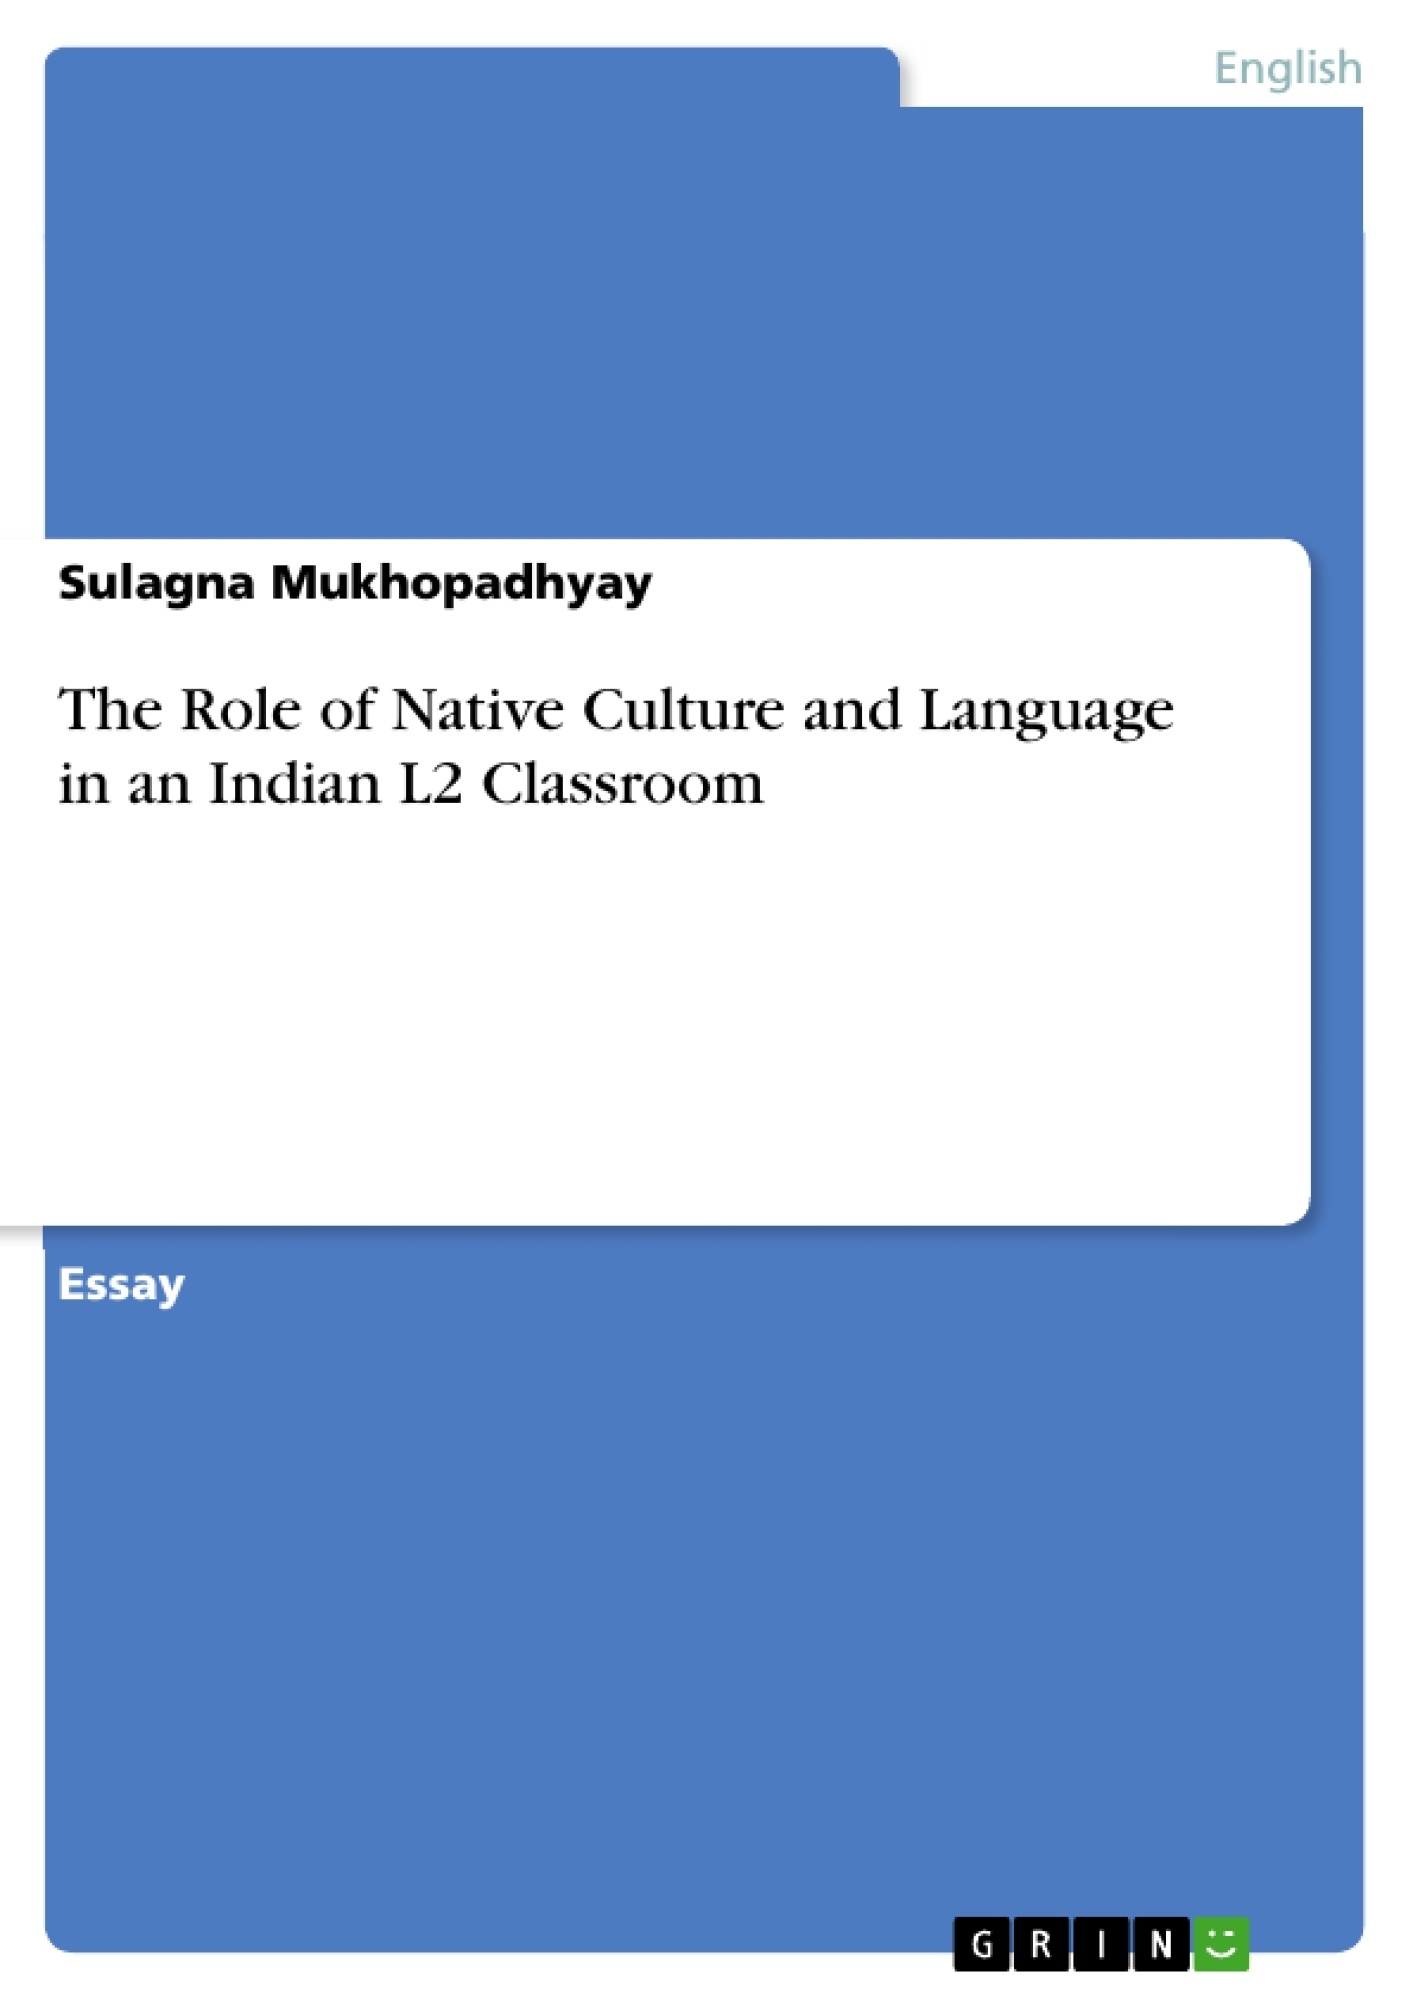 the role of native culture and language in an n l2 classroom the role of native culture and language in an n l2 classroom publish your master s thesis bachelor s thesis essay or term paper